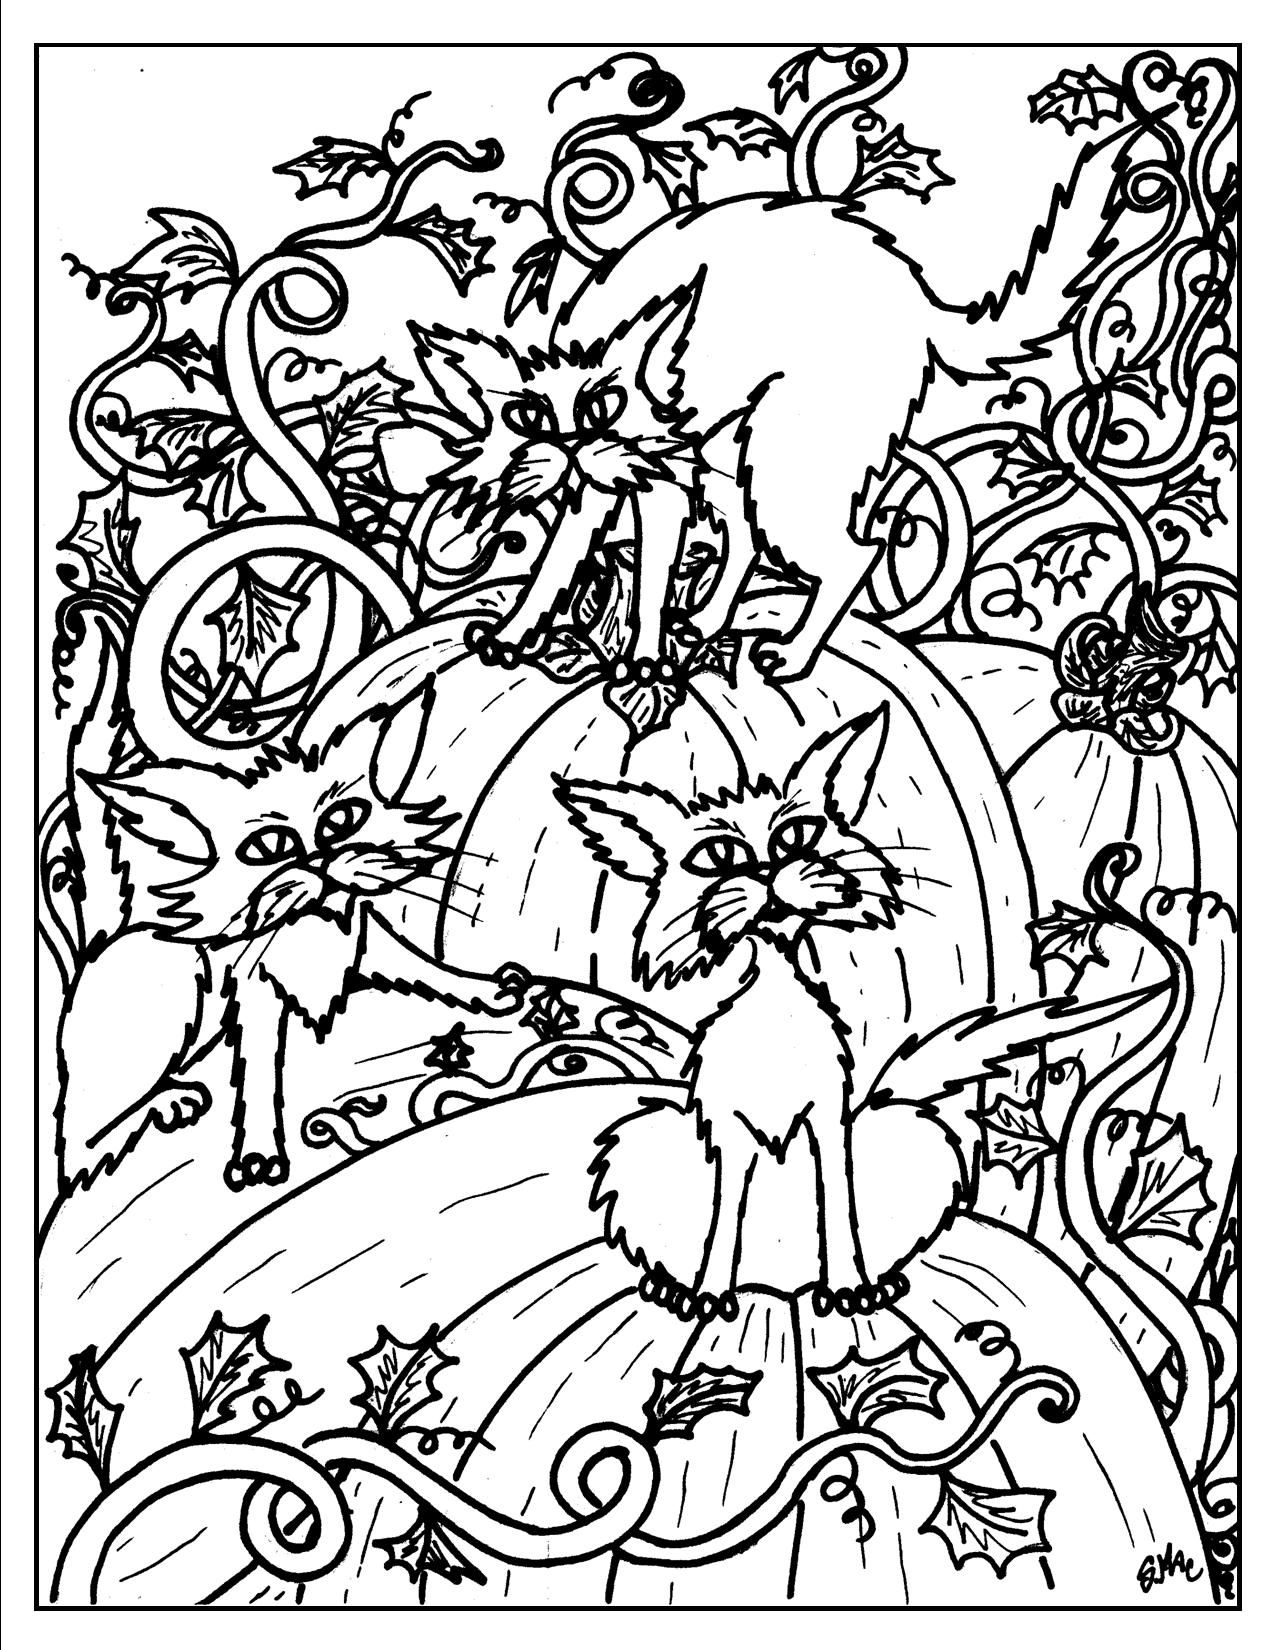 Halloween Coloring Pages Cat Coloring Page Halloween Coloring Pages Halloween Coloring Sheets